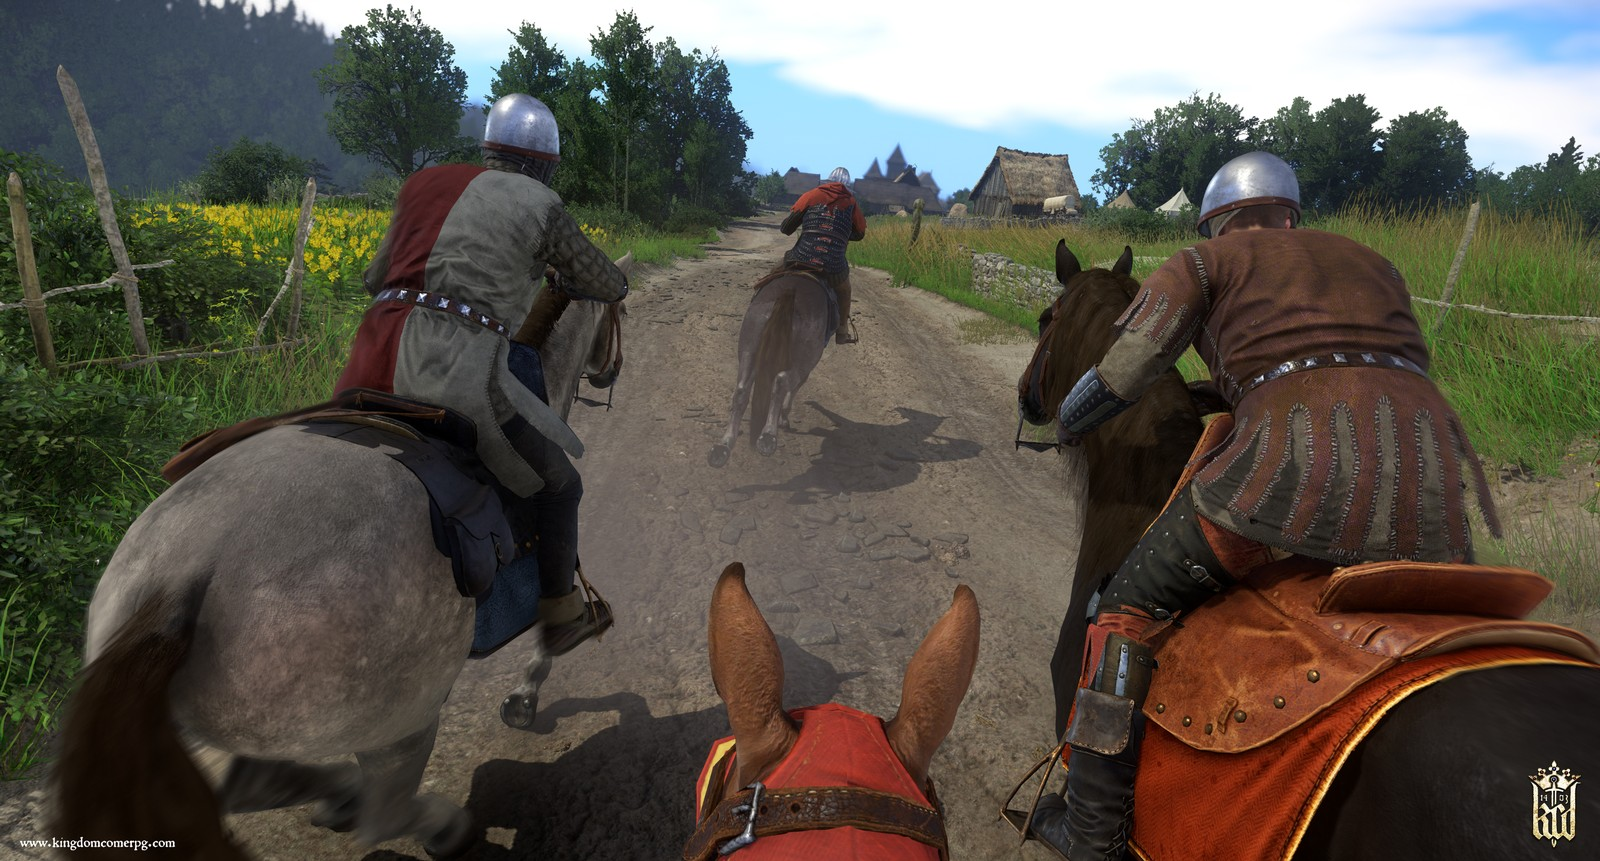 Kingdom Come Deliverance devs release DLC roadmap